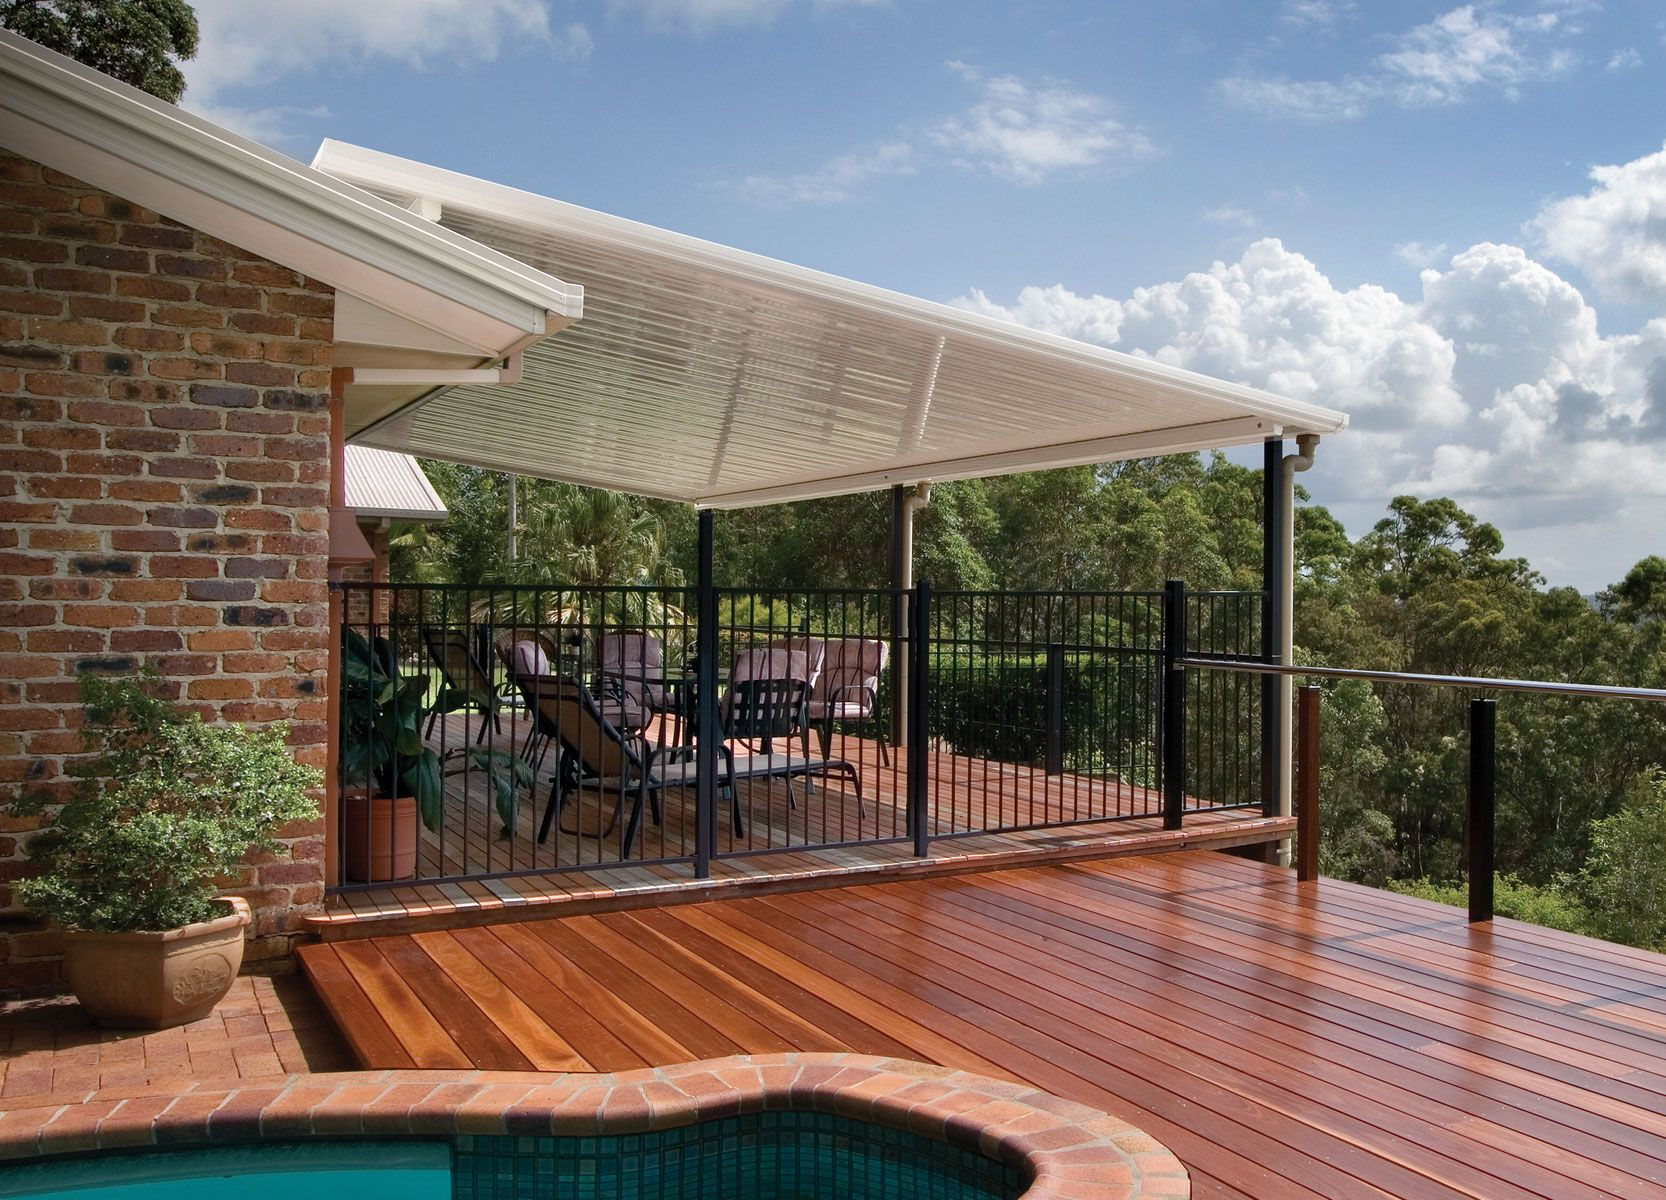 A Quality Flat Roof Patio Is An Easy And Inexpensive Way